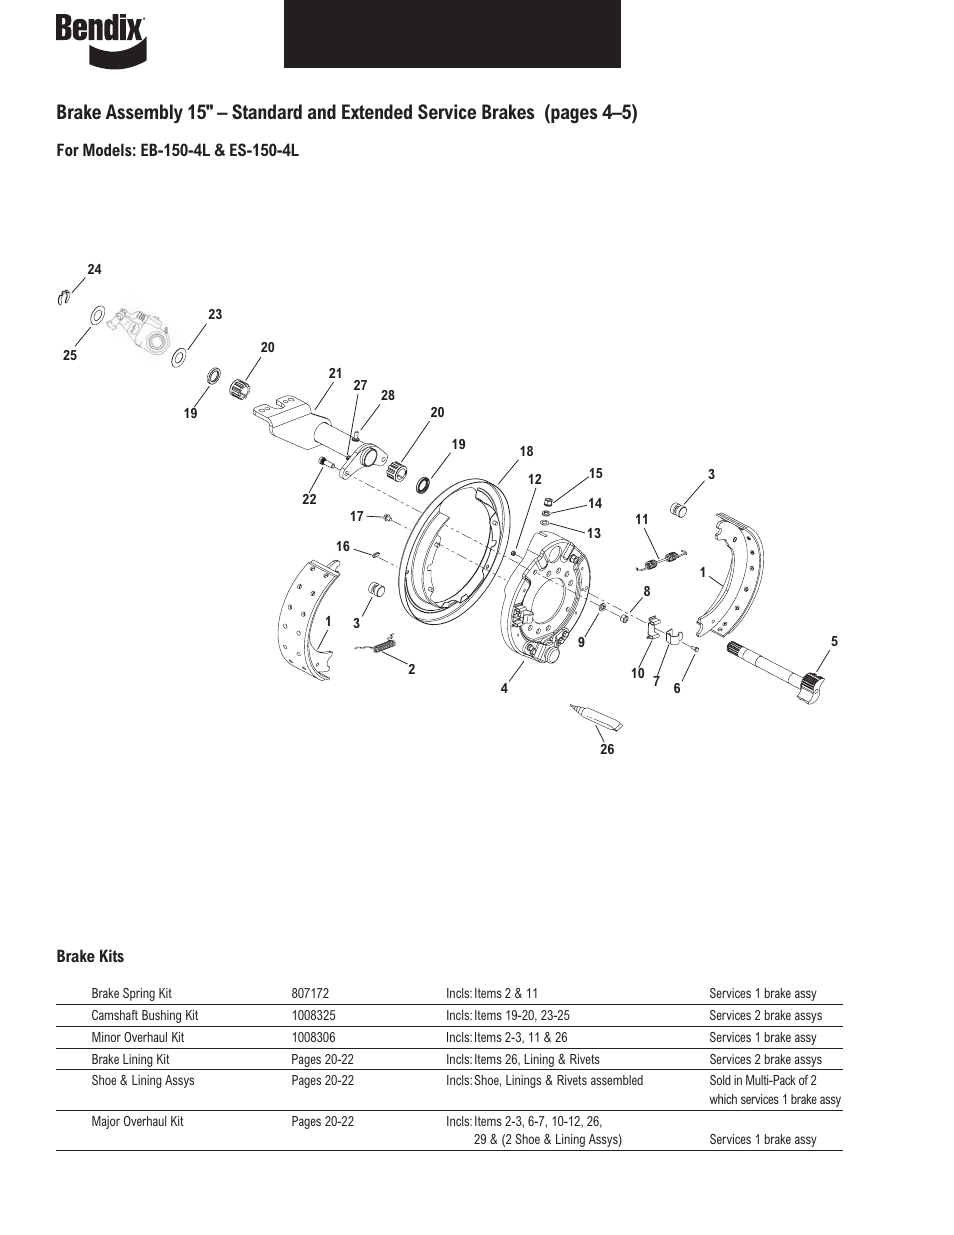 Bendix Commercial Vehicle Systems Illustrated Parts List Brakes User